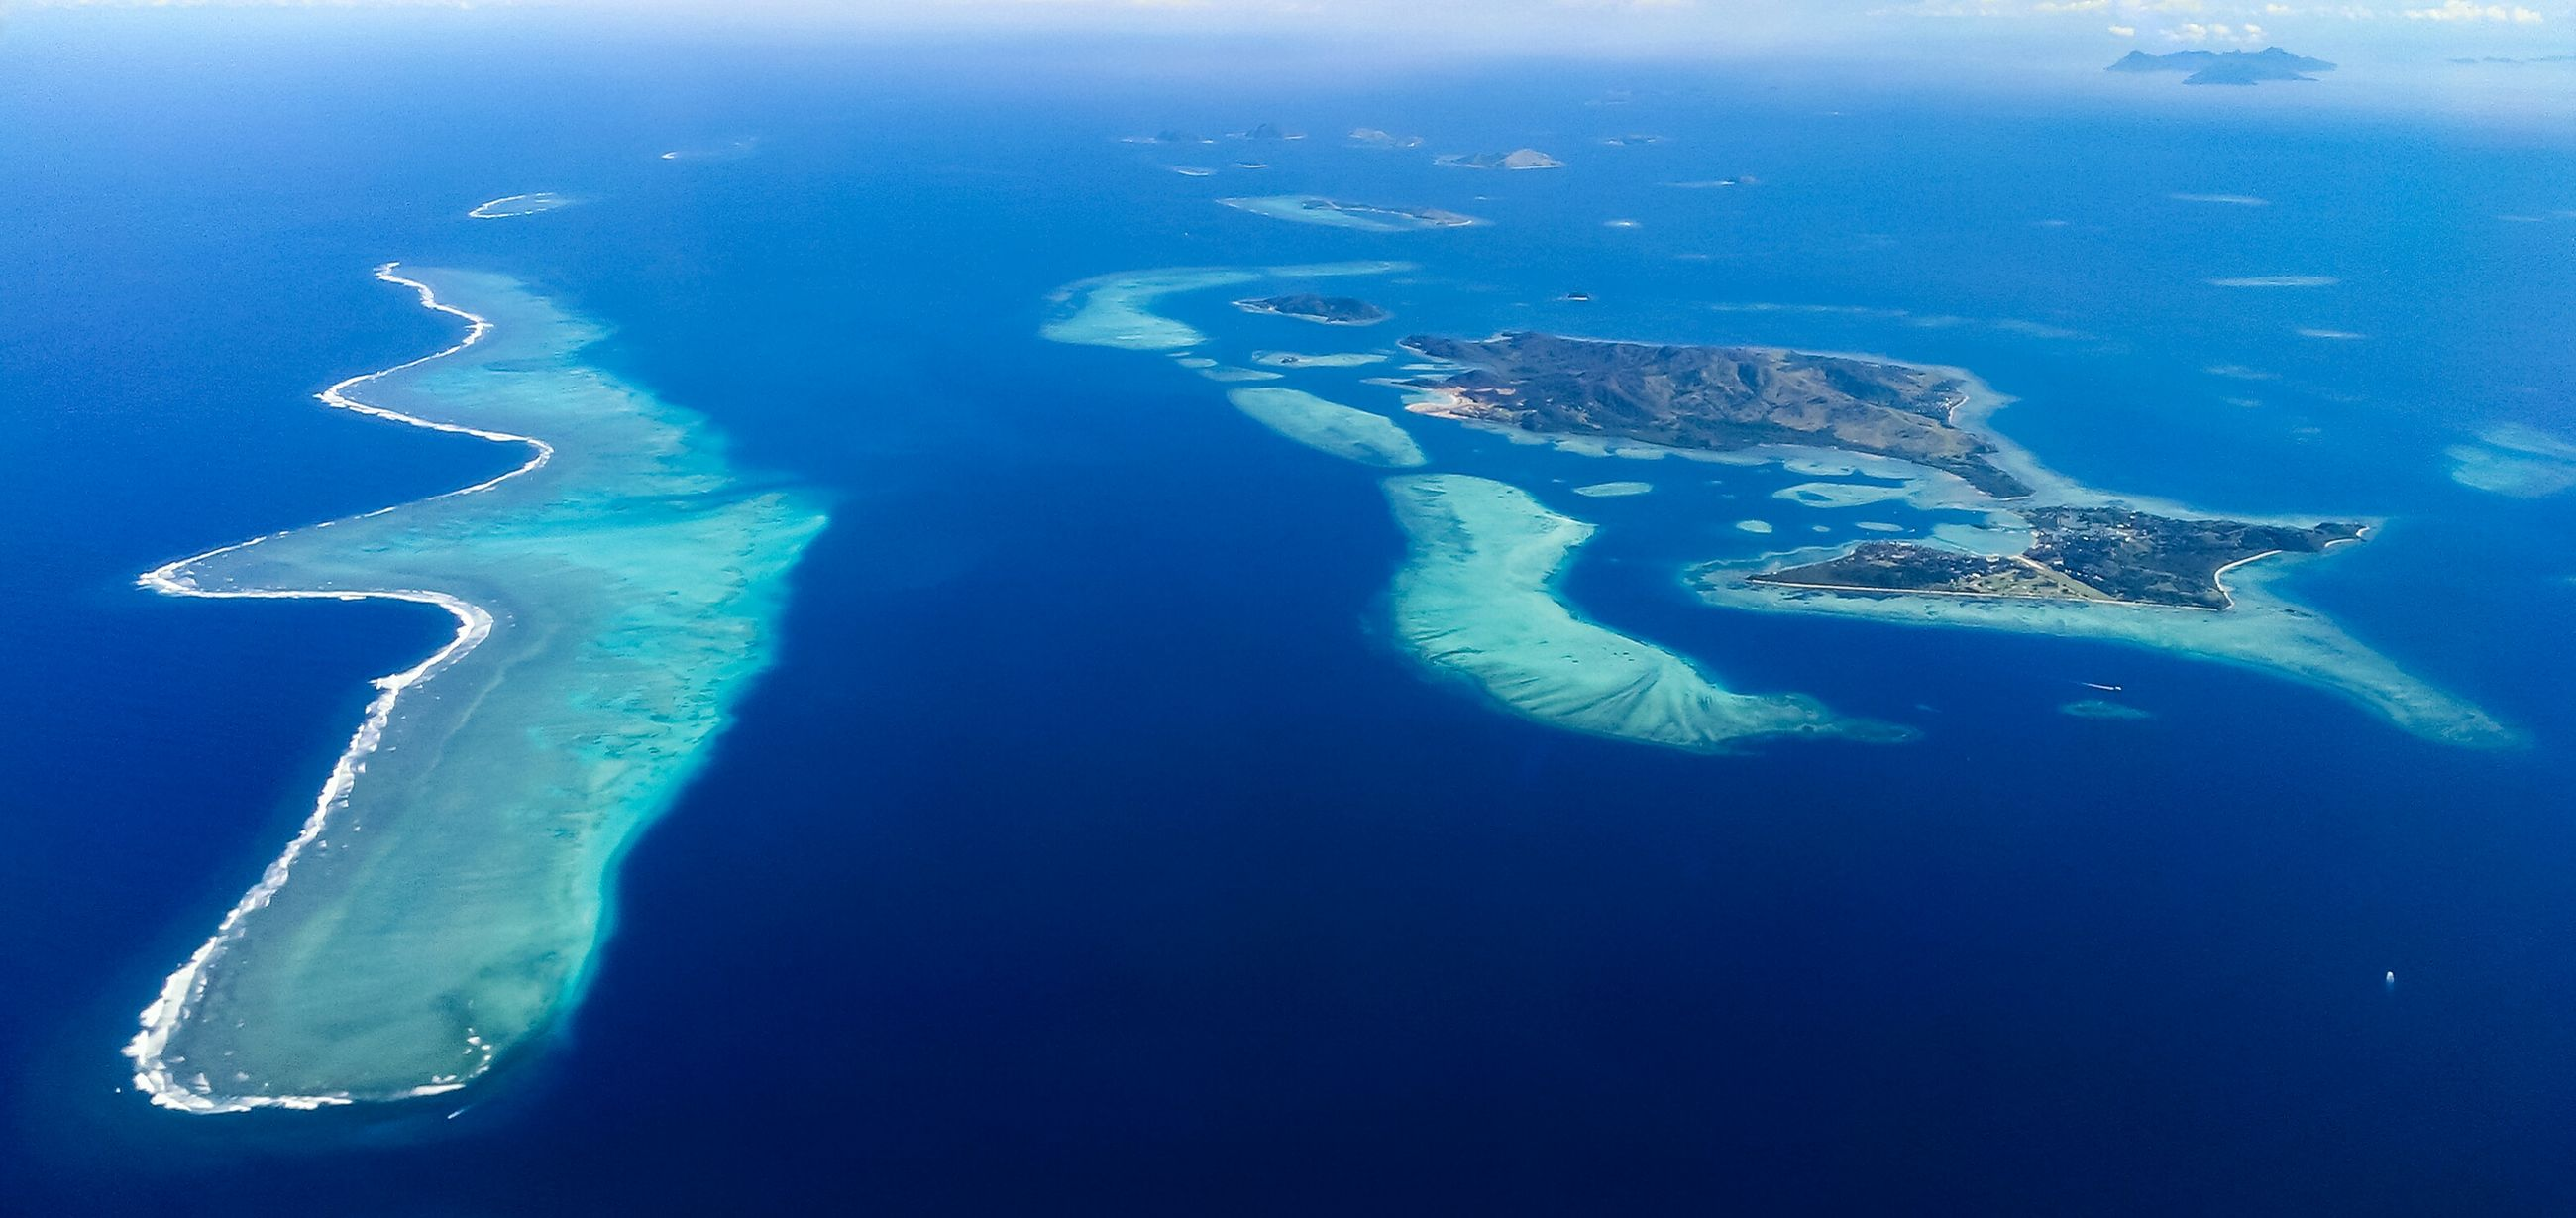 sea, water, blue, beauty in nature, tranquility, tranquil scene, scenics, nature, aerial view, horizon over water, underwater, high angle view, idyllic, undersea, turquoise colored, waterfront, coastline, seascape, sea life, ocean